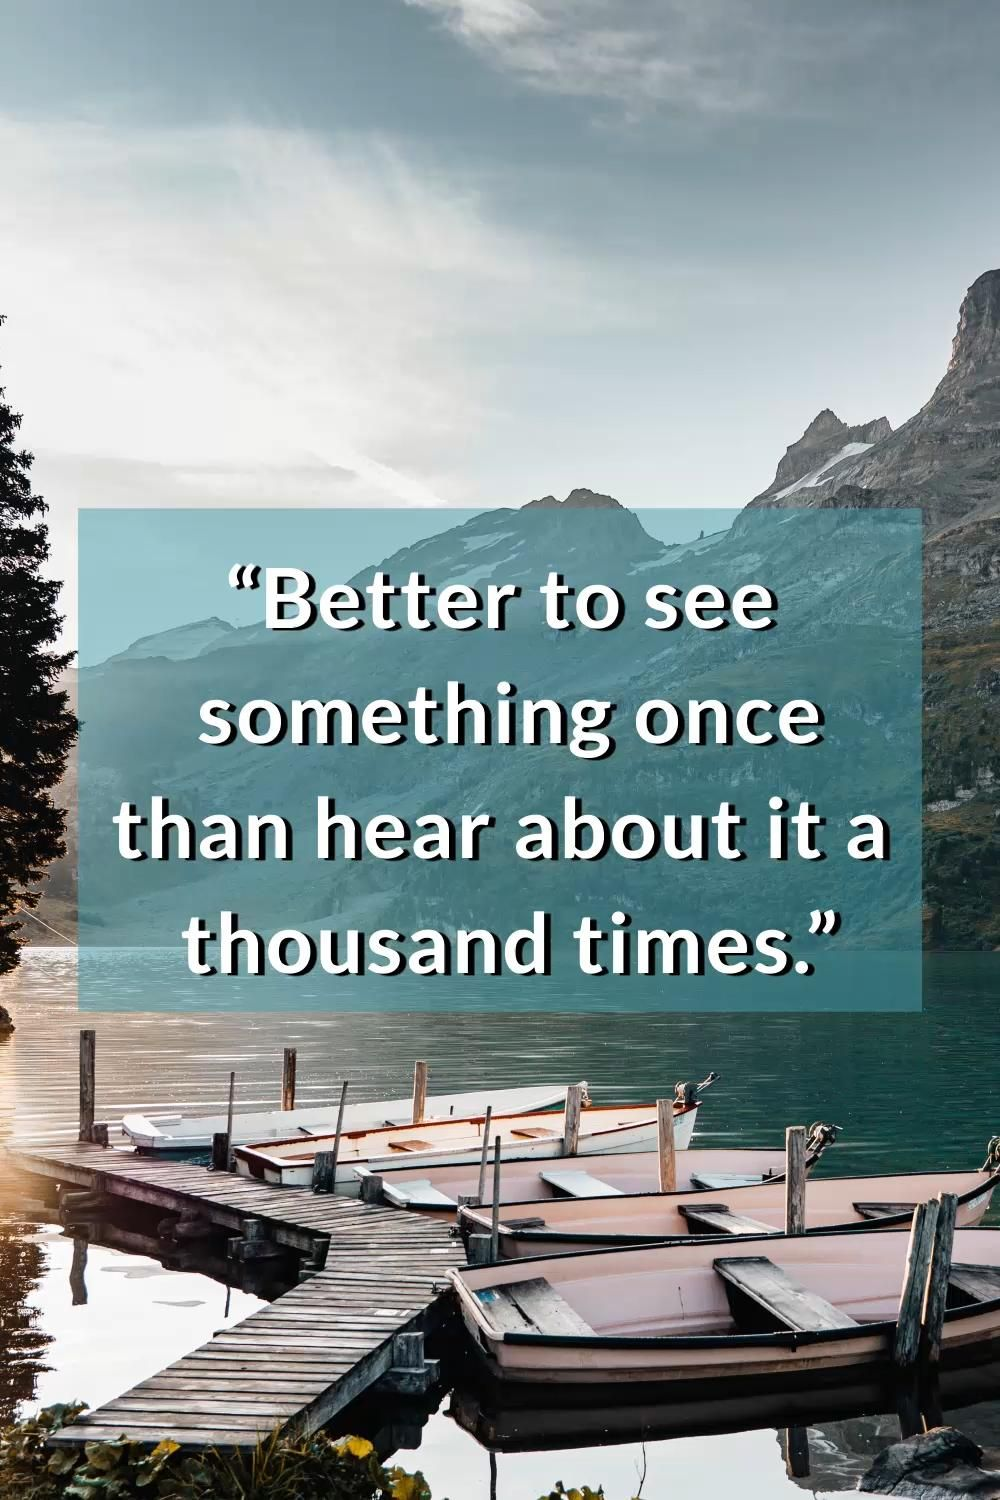 Better to see something once than hear about it a thousand times. #Travel #Travelquotes #motivational #Goodmorning